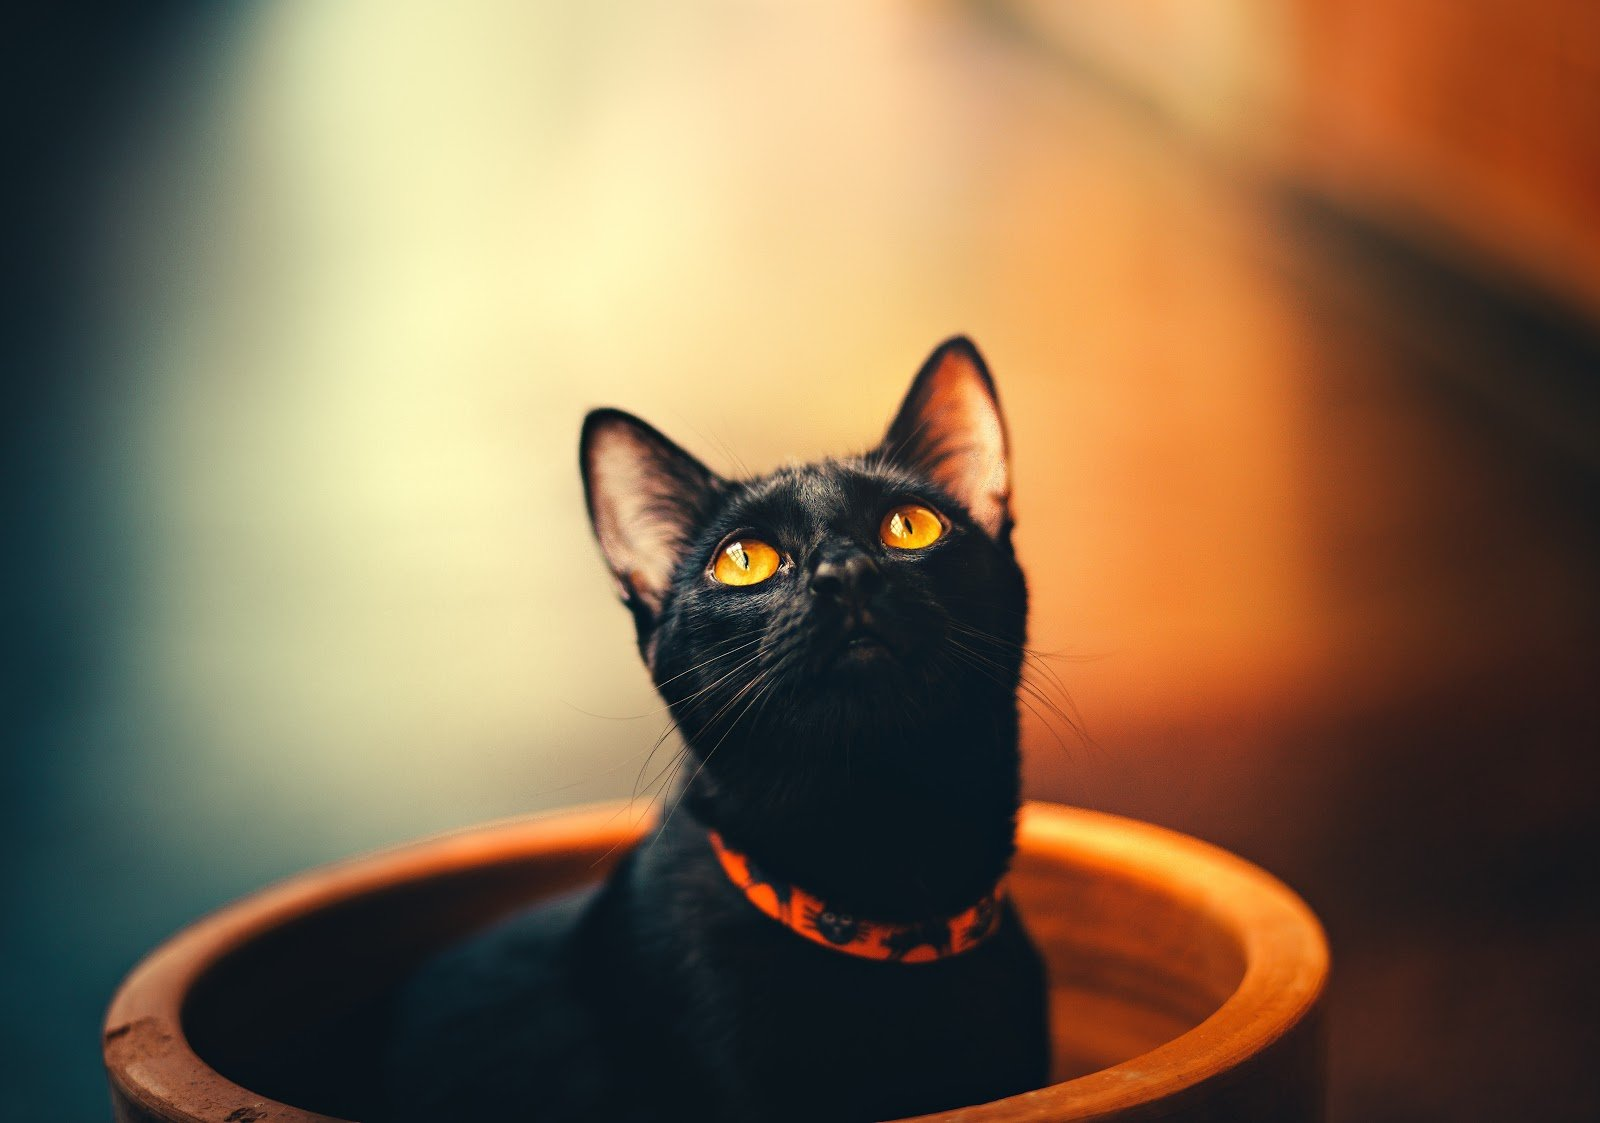 Names for Black Cats